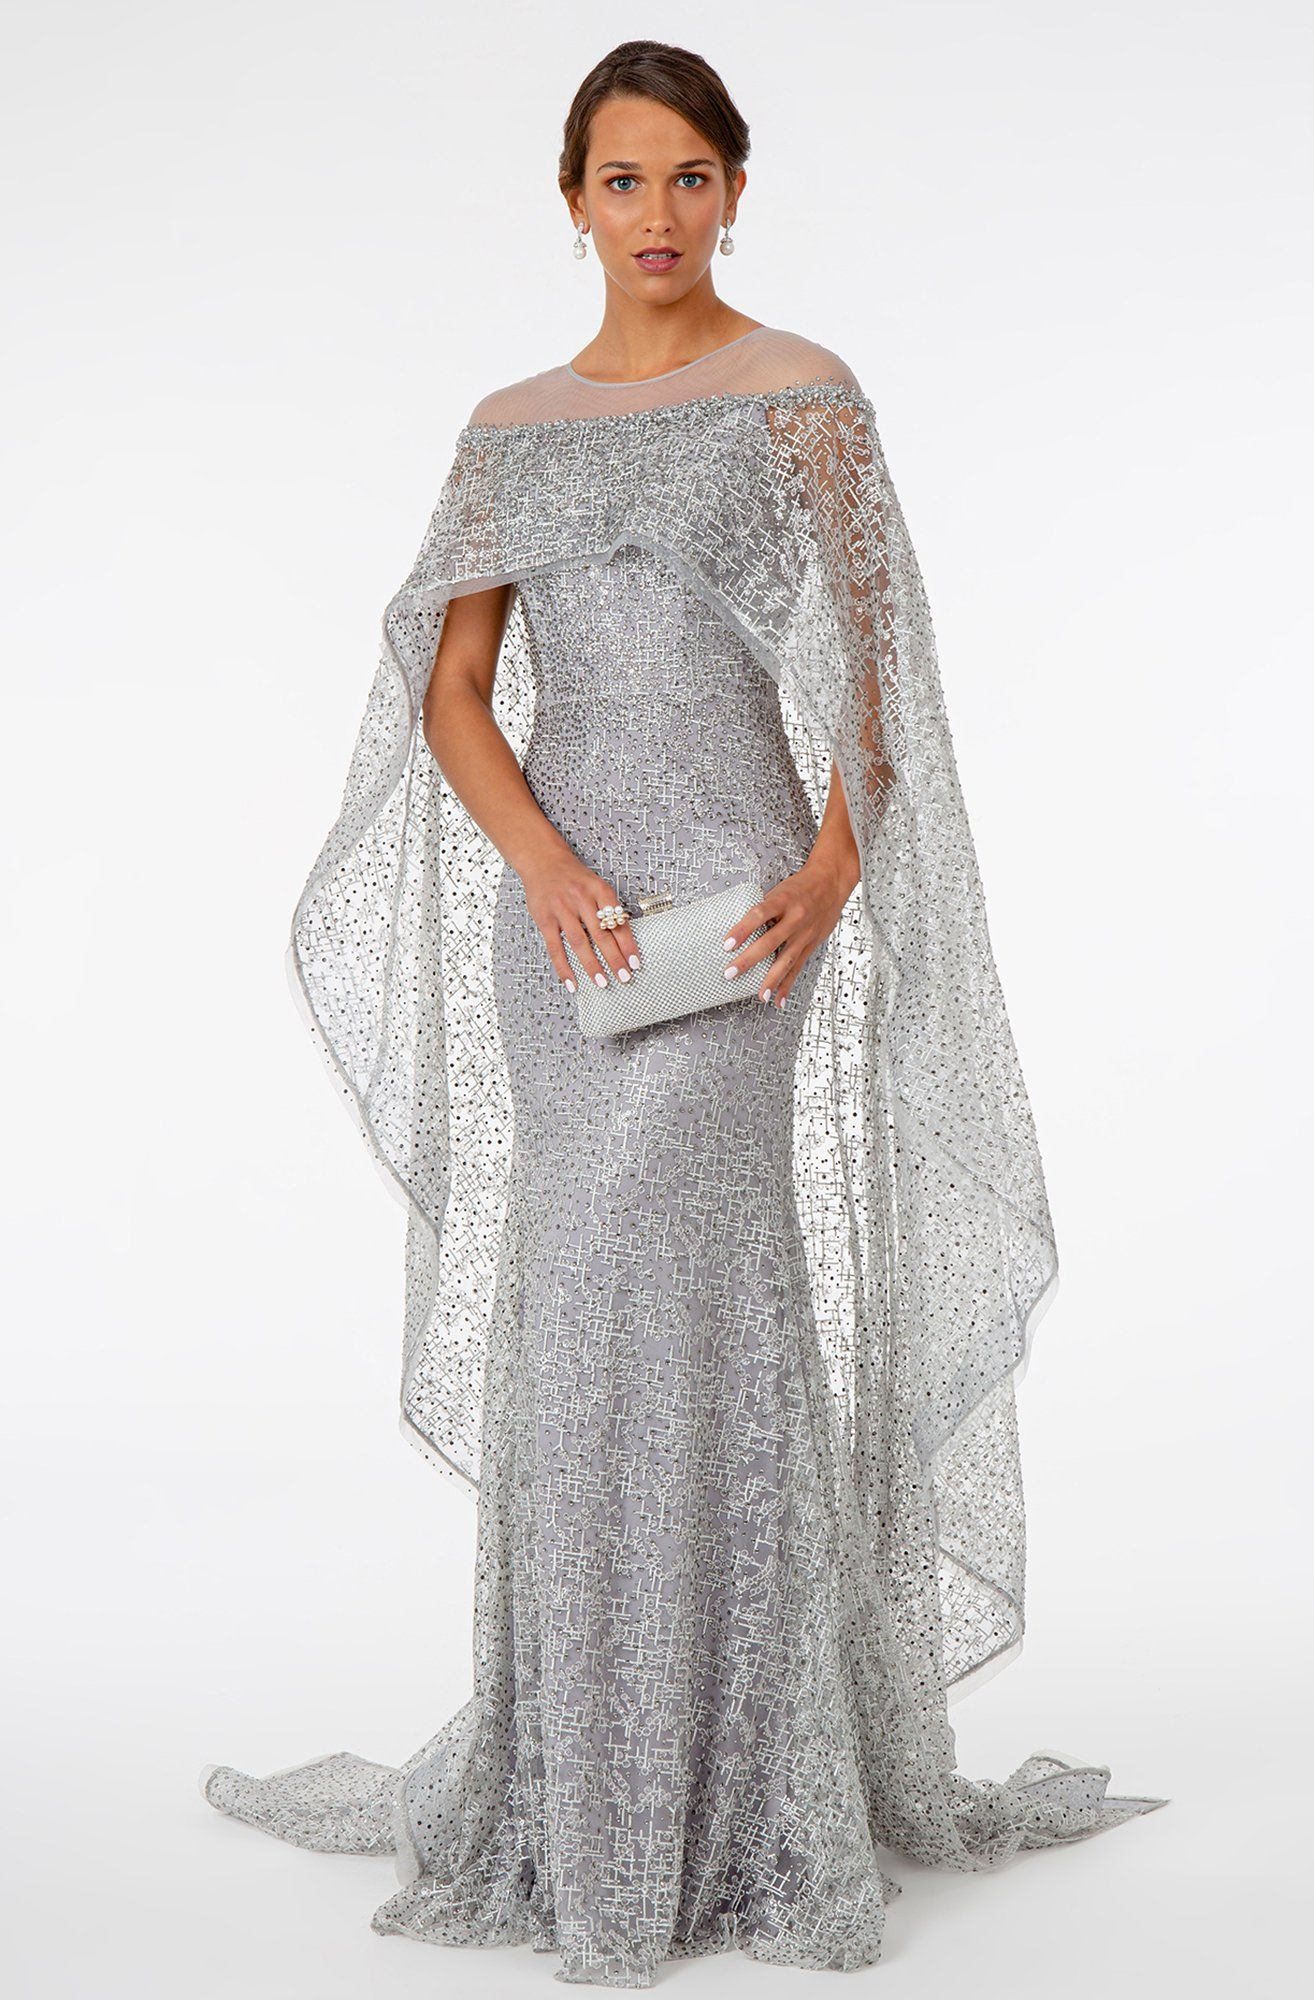 30+ Dress with cape attached ideas